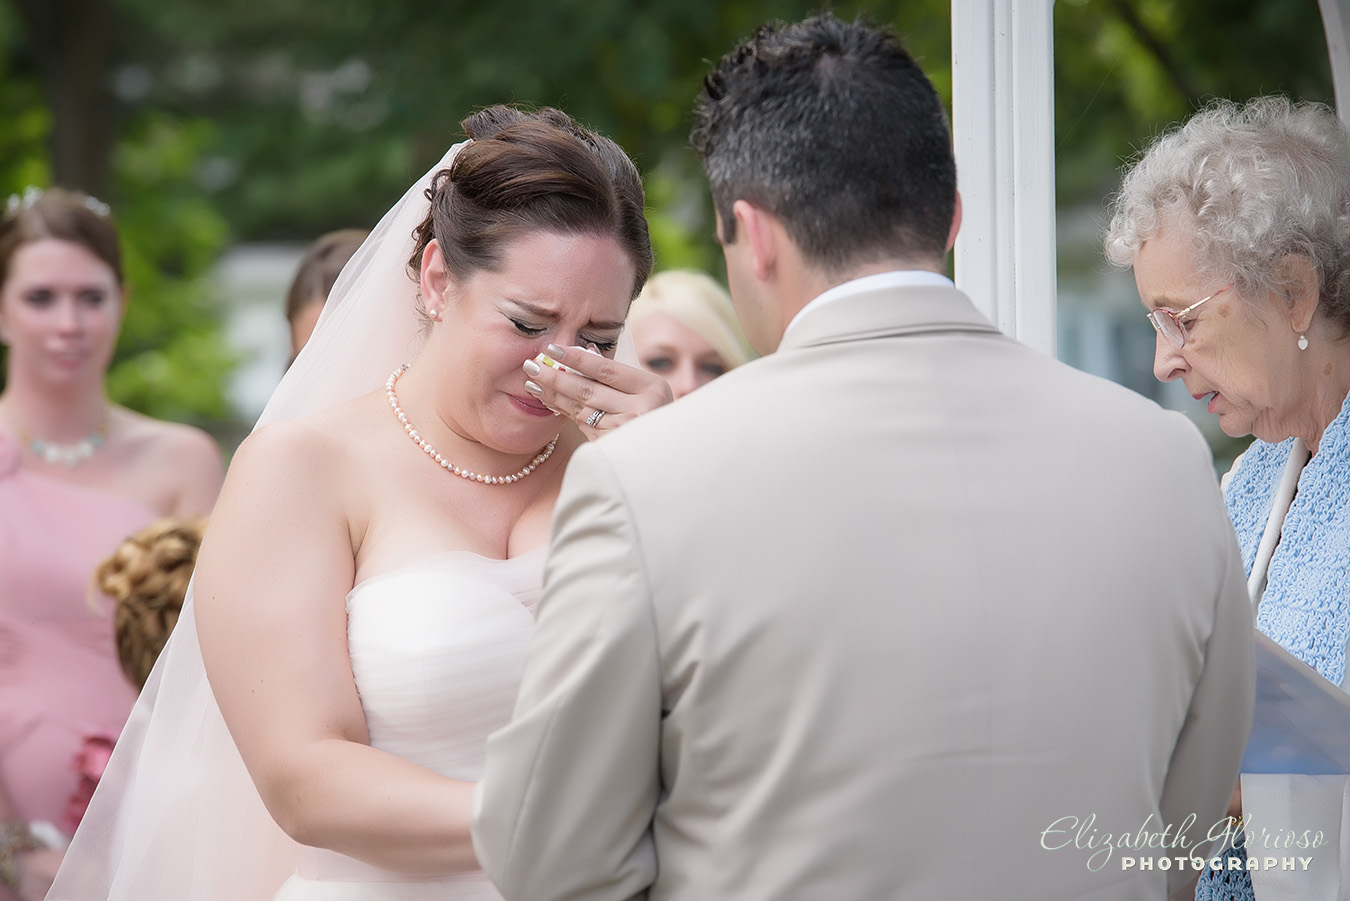 Vermilion_wedding_Glorioso Photography_1031